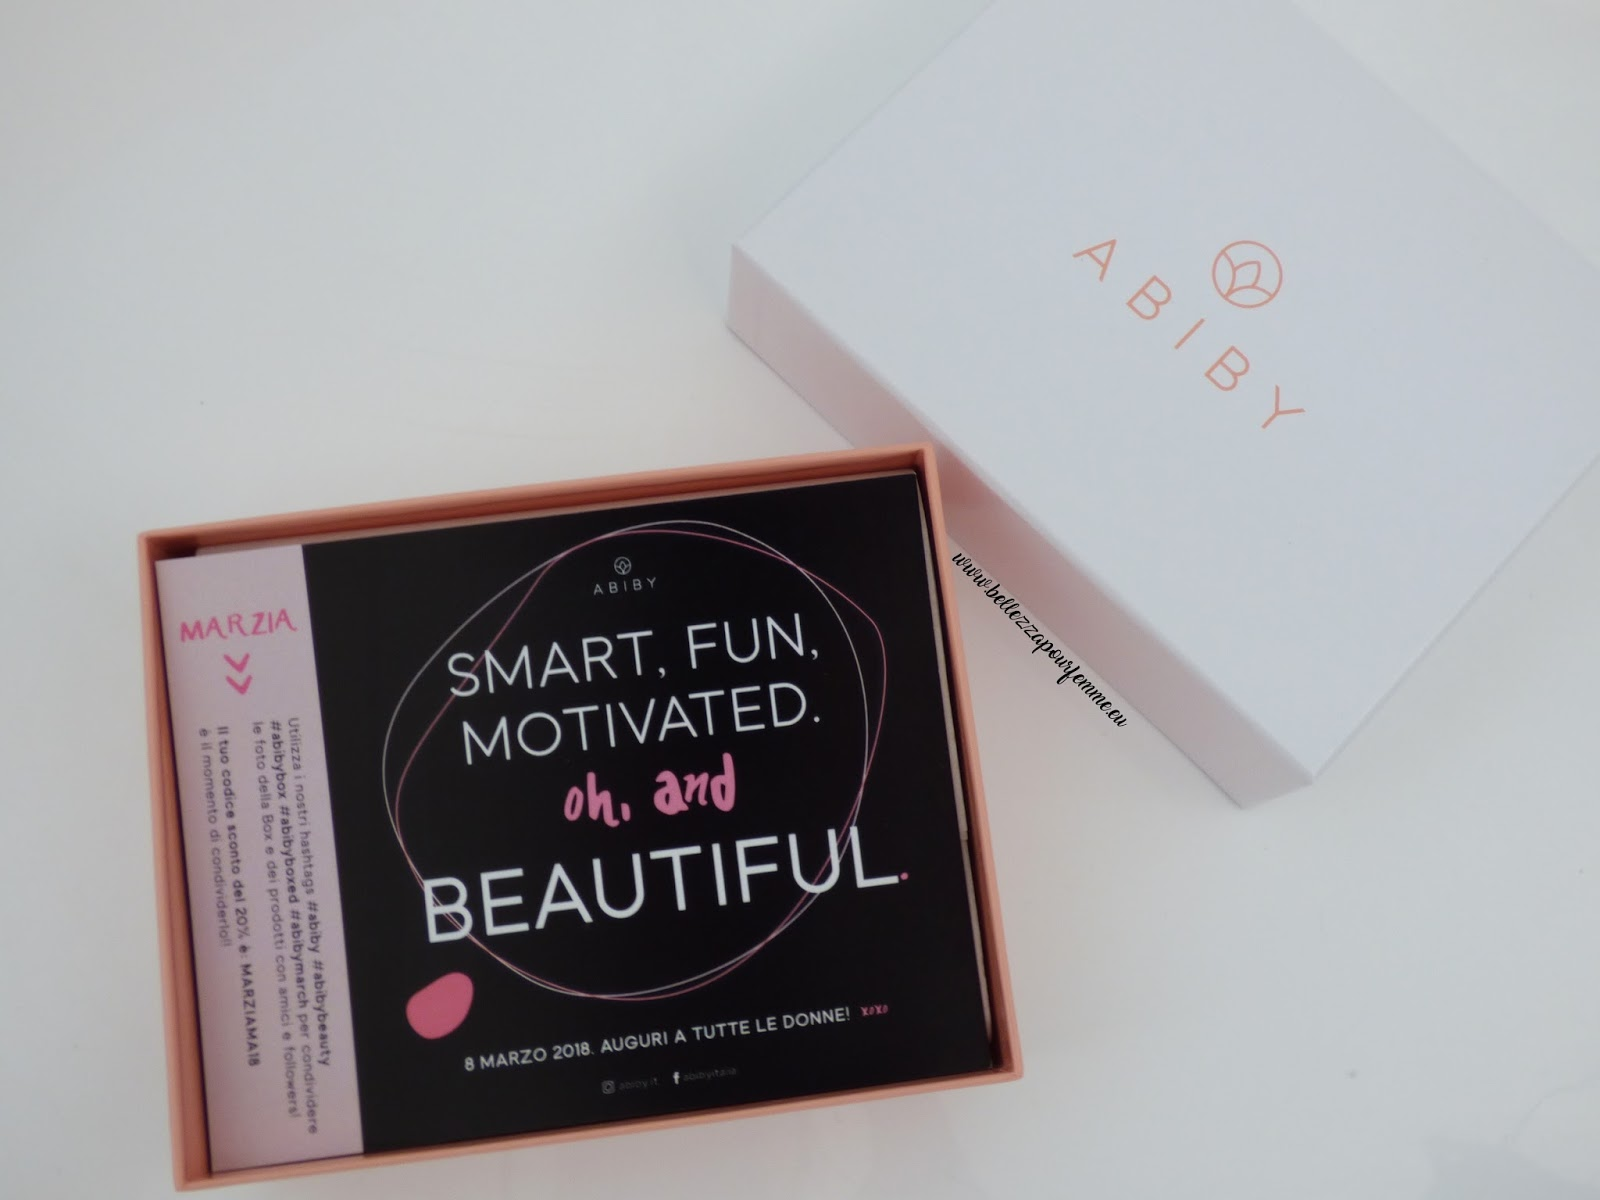 Smart, fun, motivated. Oh, and beautiful è la box di Marzo Abiby!